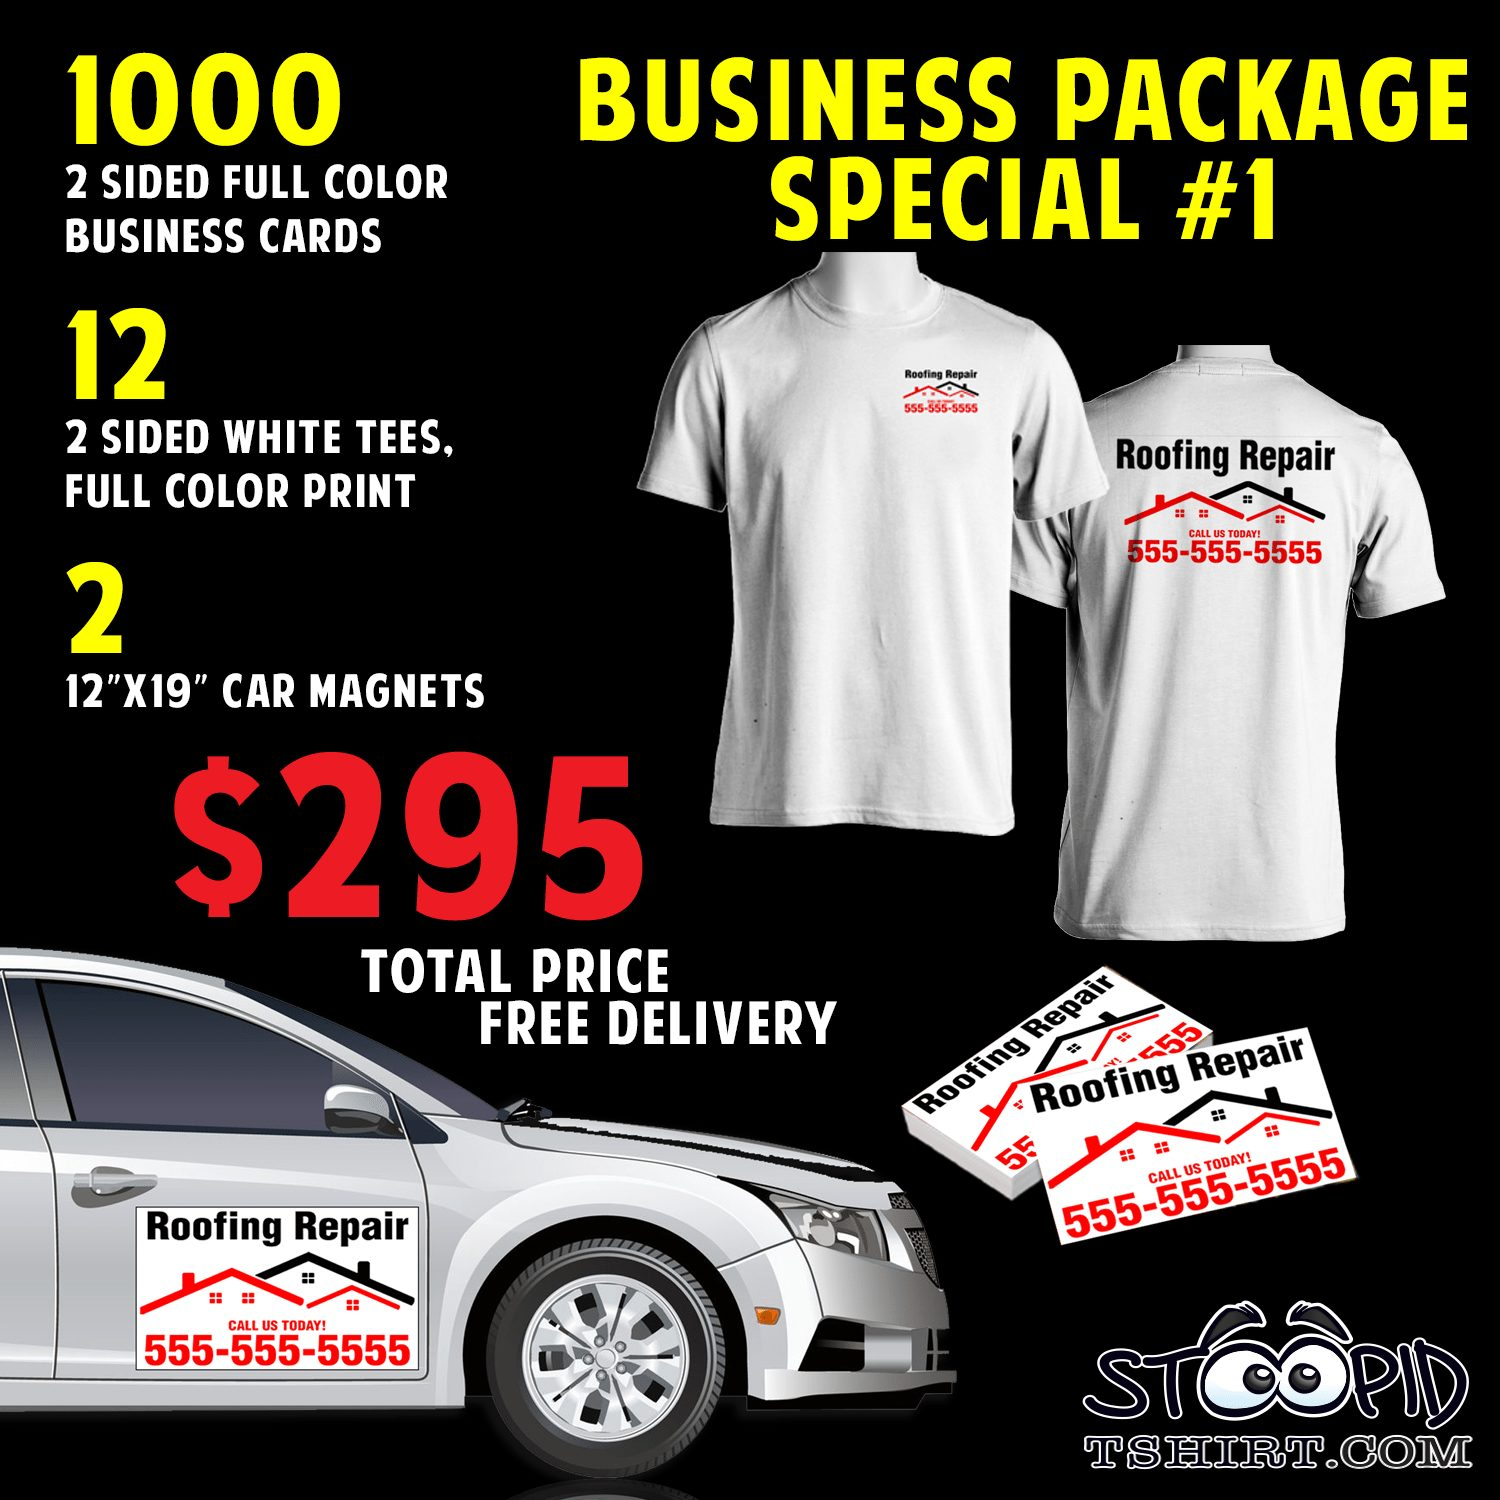 BUSINESS PACKAGE SPECIAL #1 - stoopidtshirt.com